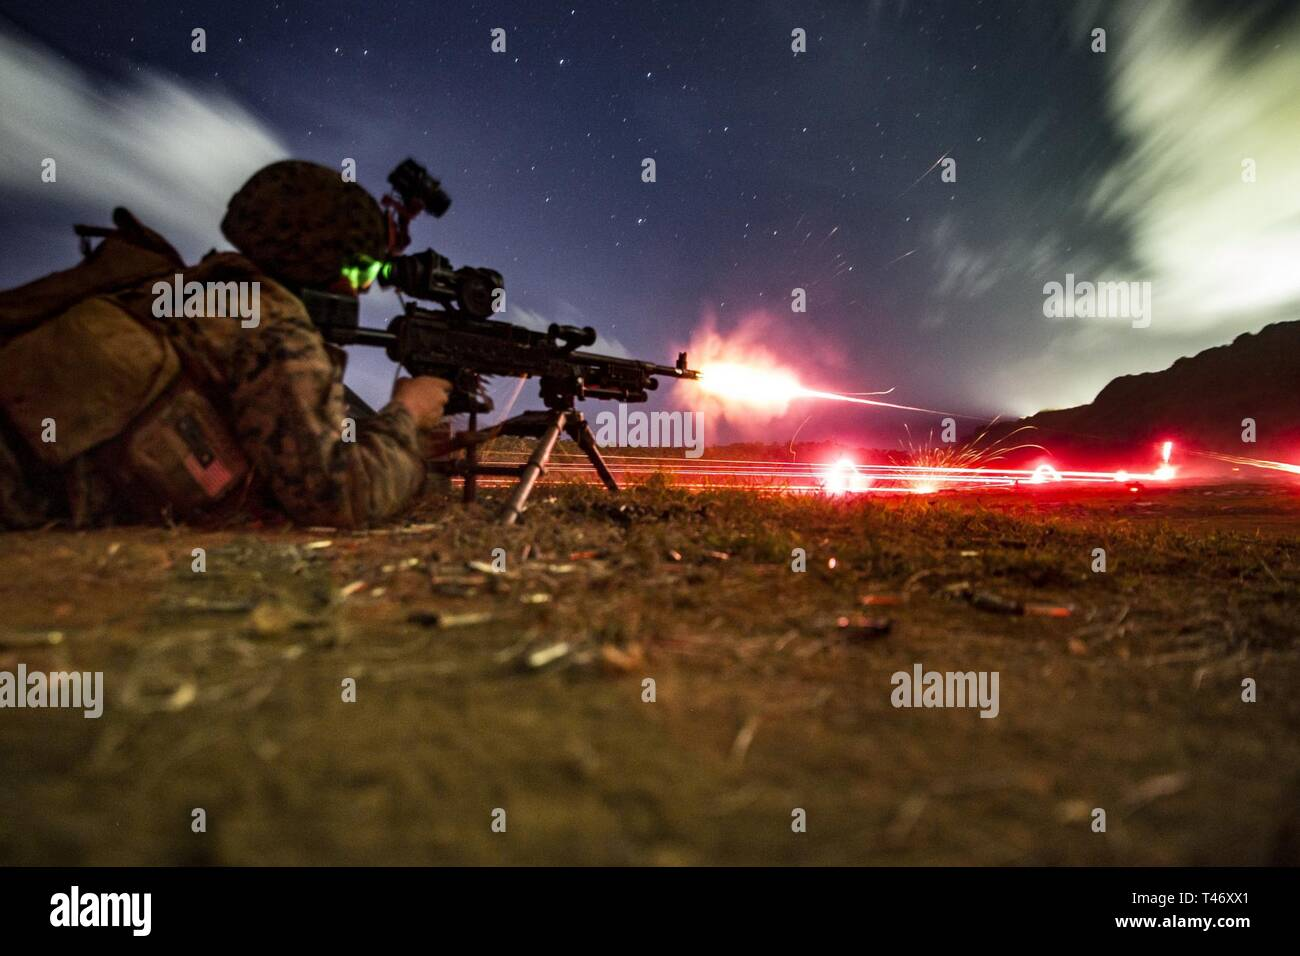 "Lance Cpl. Chris Pedroza, a rifleman with Alpha Company, Battalion Landing Team, 1st Battalion, 4th Marines, the ""China Marines,"" fires an M240G medium machine gun during low-light live-fire machine gun training at Anderson Air Force Base, Guam, March 11, 2019. Pedroza, a native of Apple Valley, California, graduated from Apple Valley High School in May 2016 before enlisting in January 2017. Alpha Company Marines are the small boat raid specialists for BLT 1/4, the Ground Combat Element for the 31st Marine Expeditionary Unit. The 31st MEU, the Marine Corps' only continuously forward-deployed M - Stock Image"